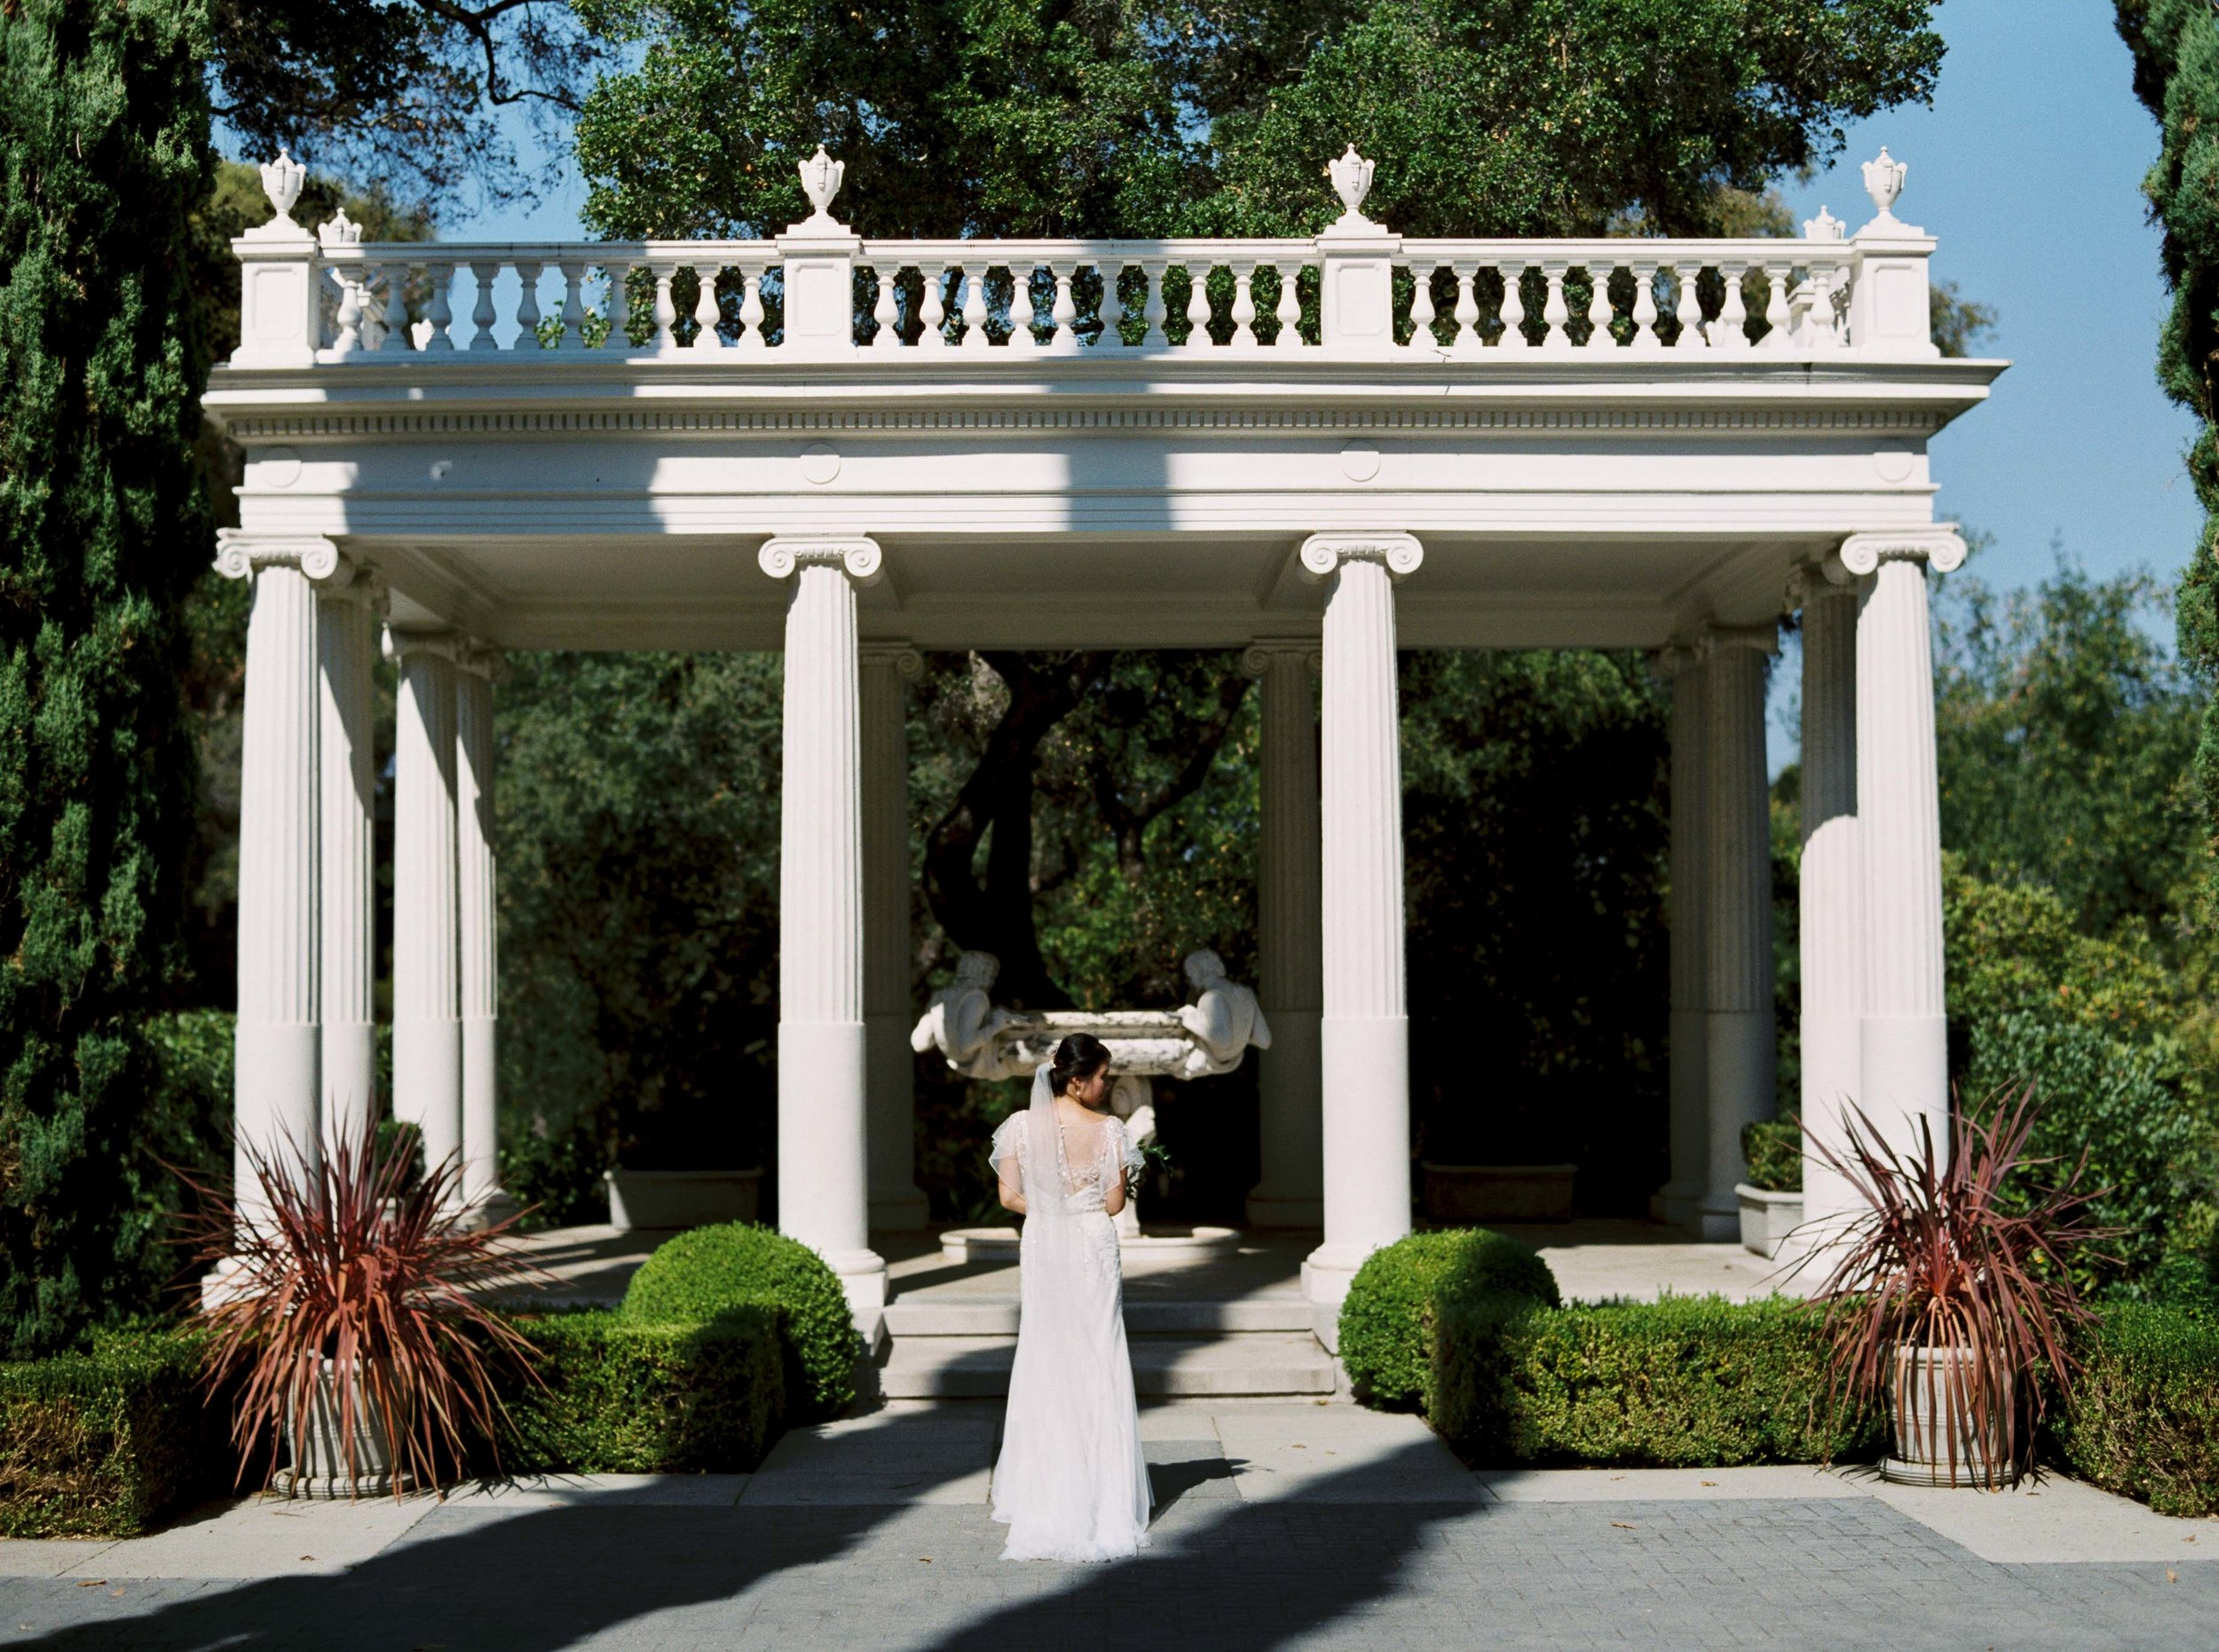 Villa_Montalvo_Wedding_Photographer_Videographer_San_Francisco084.jpg